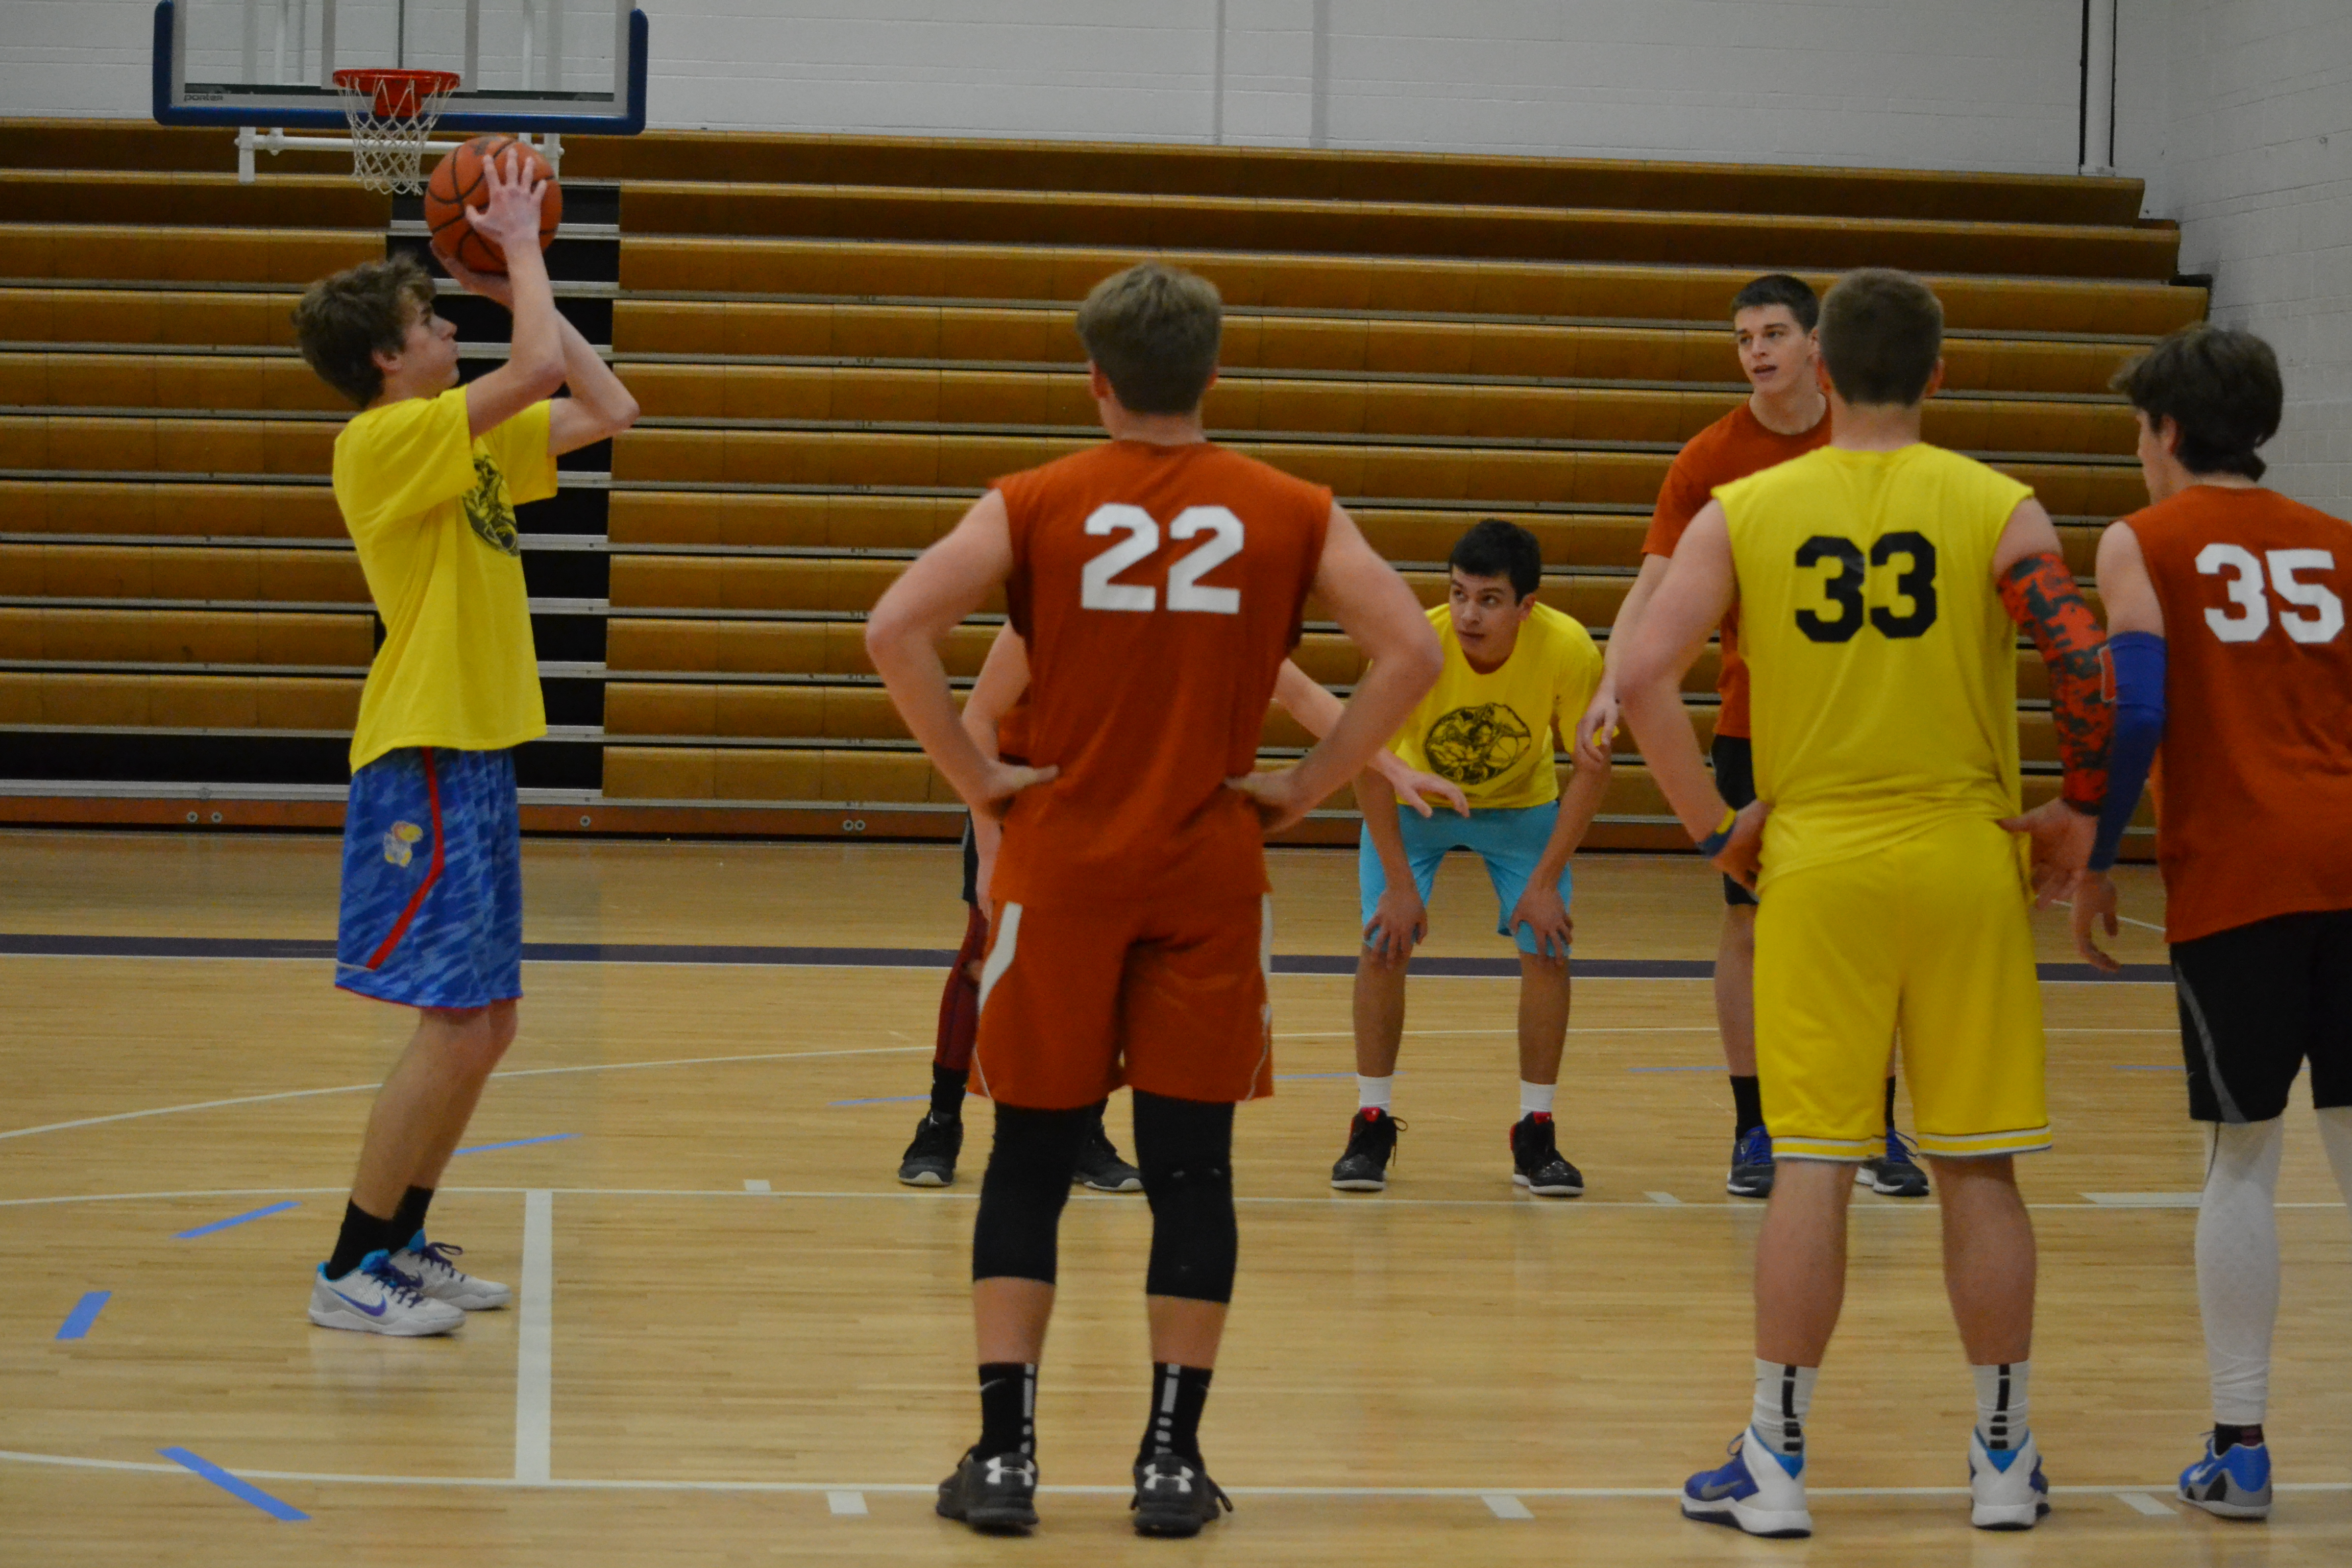 Intramural Sports Leagues